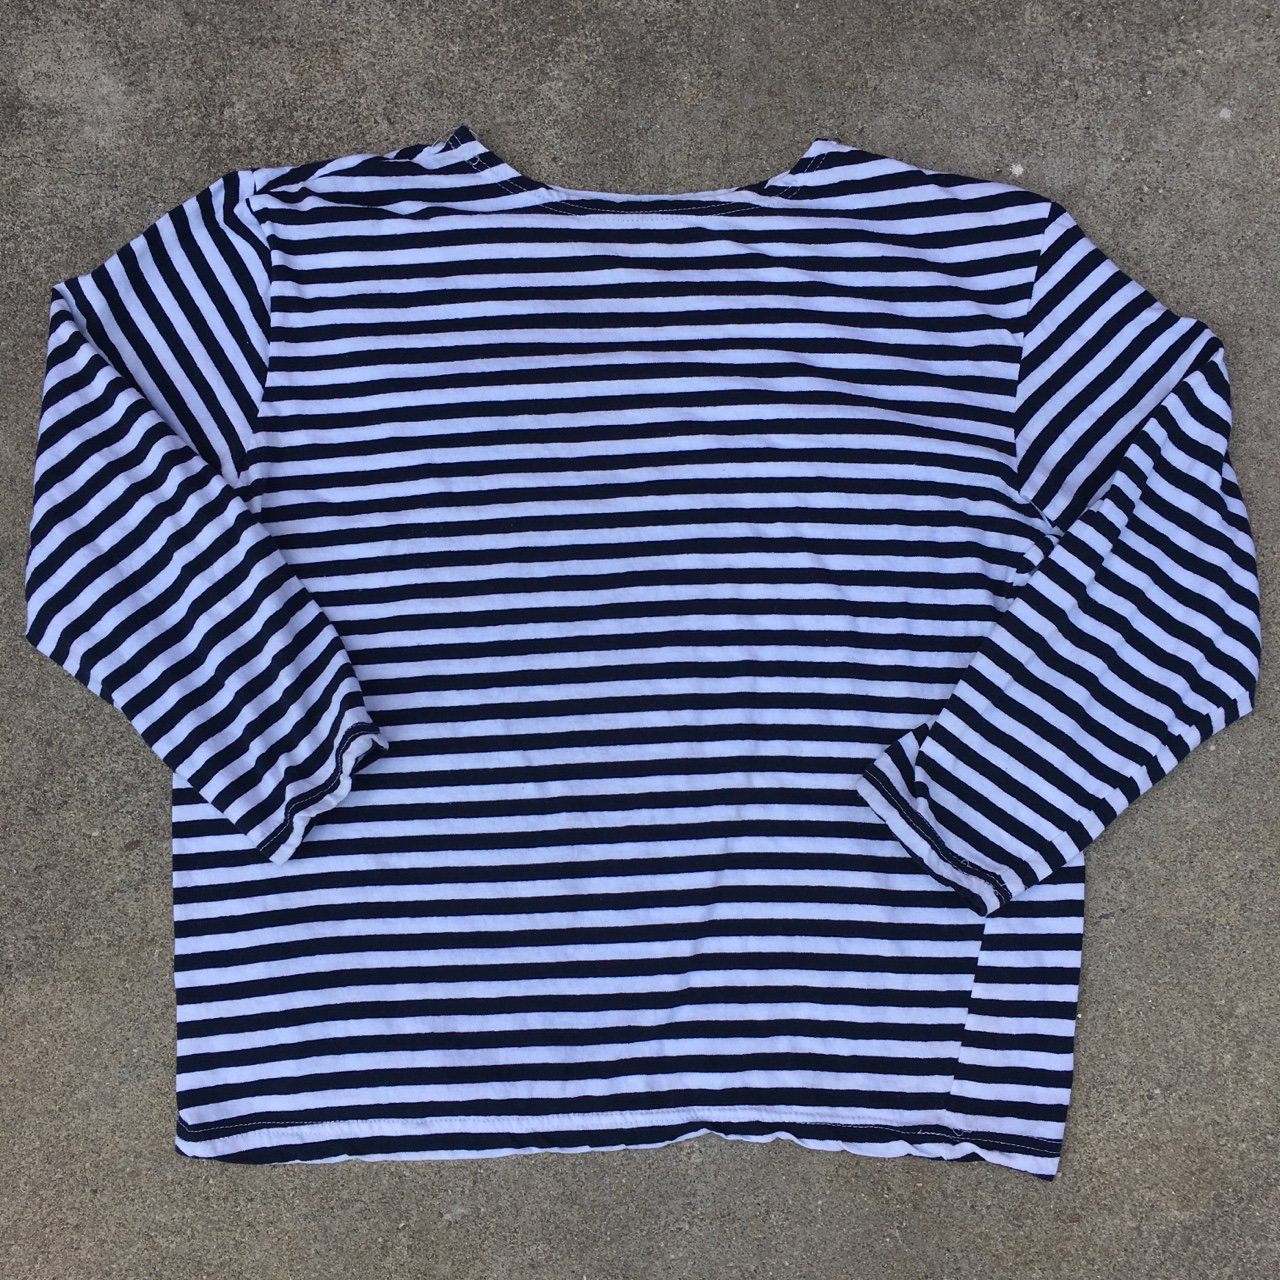 0b627e9e44 Russian Blue And White Striped Shirt – EDGE Engineering and ...